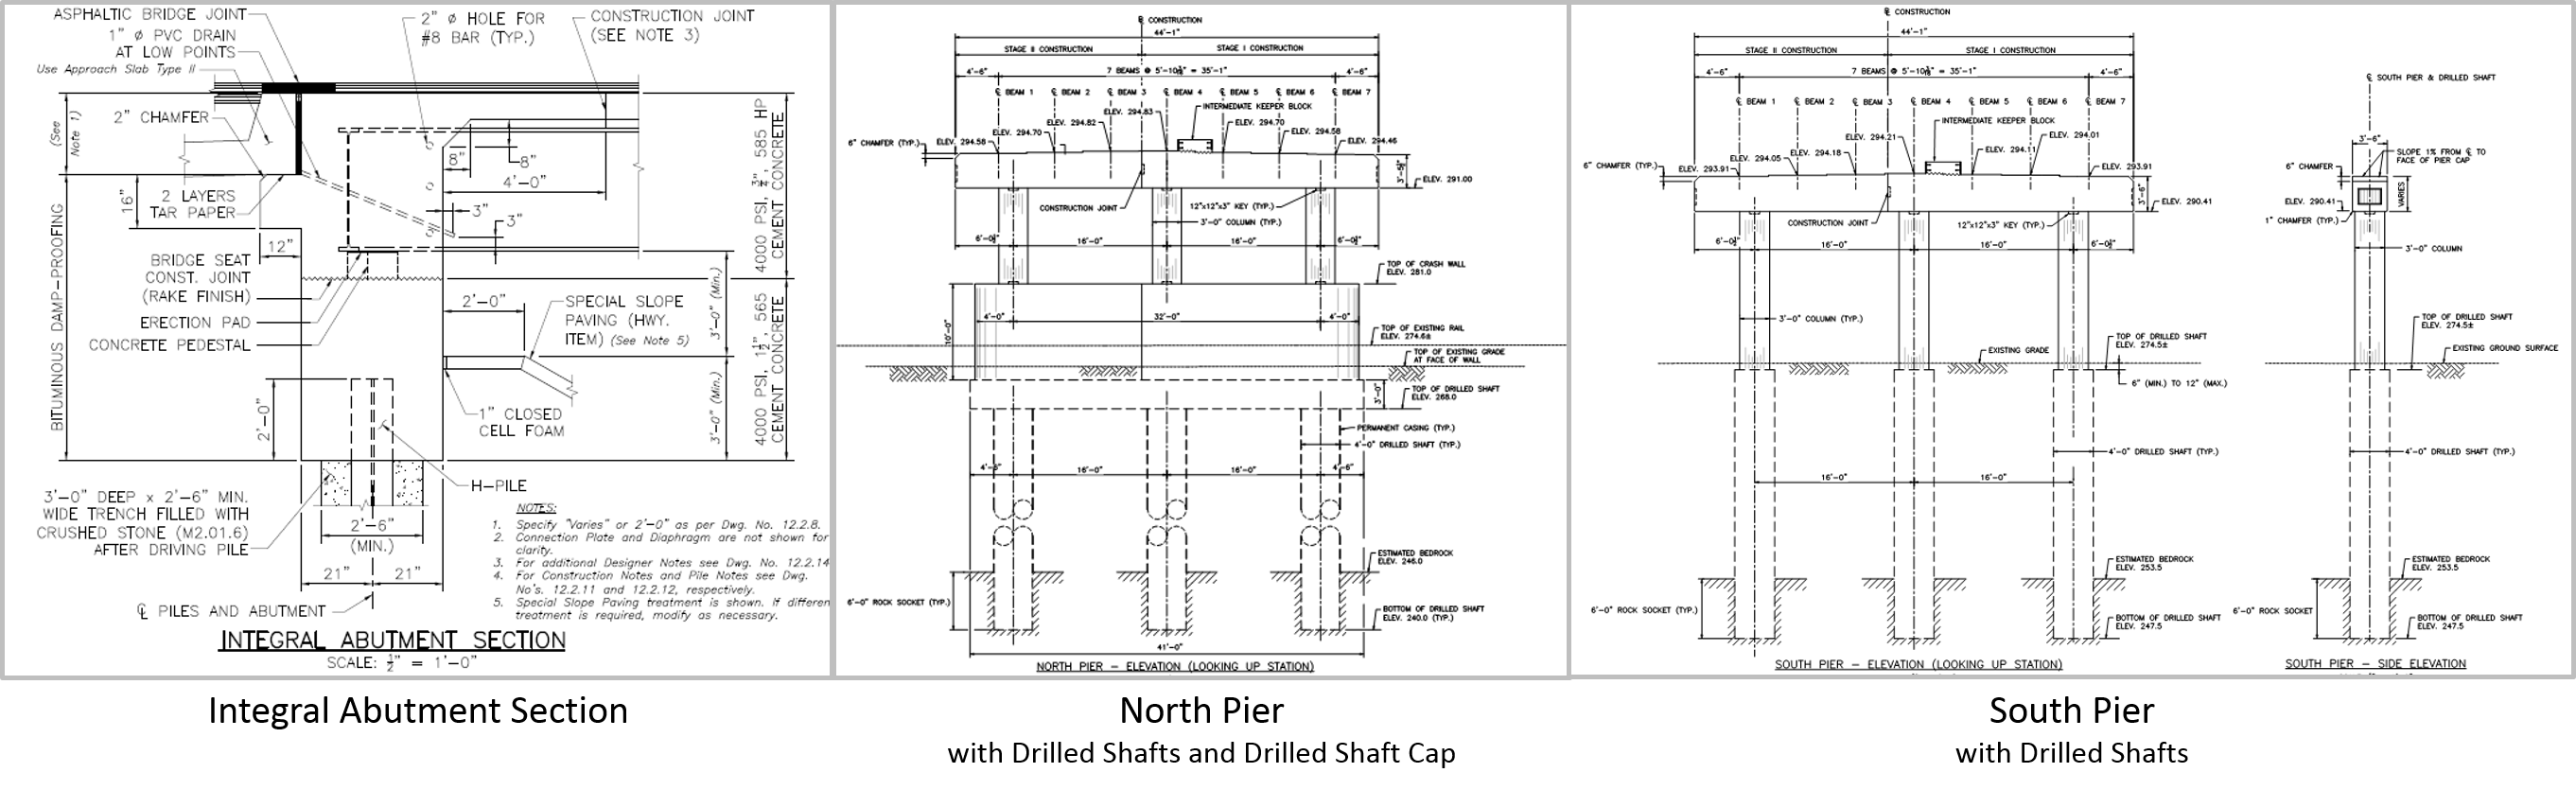 Substructure Section Views